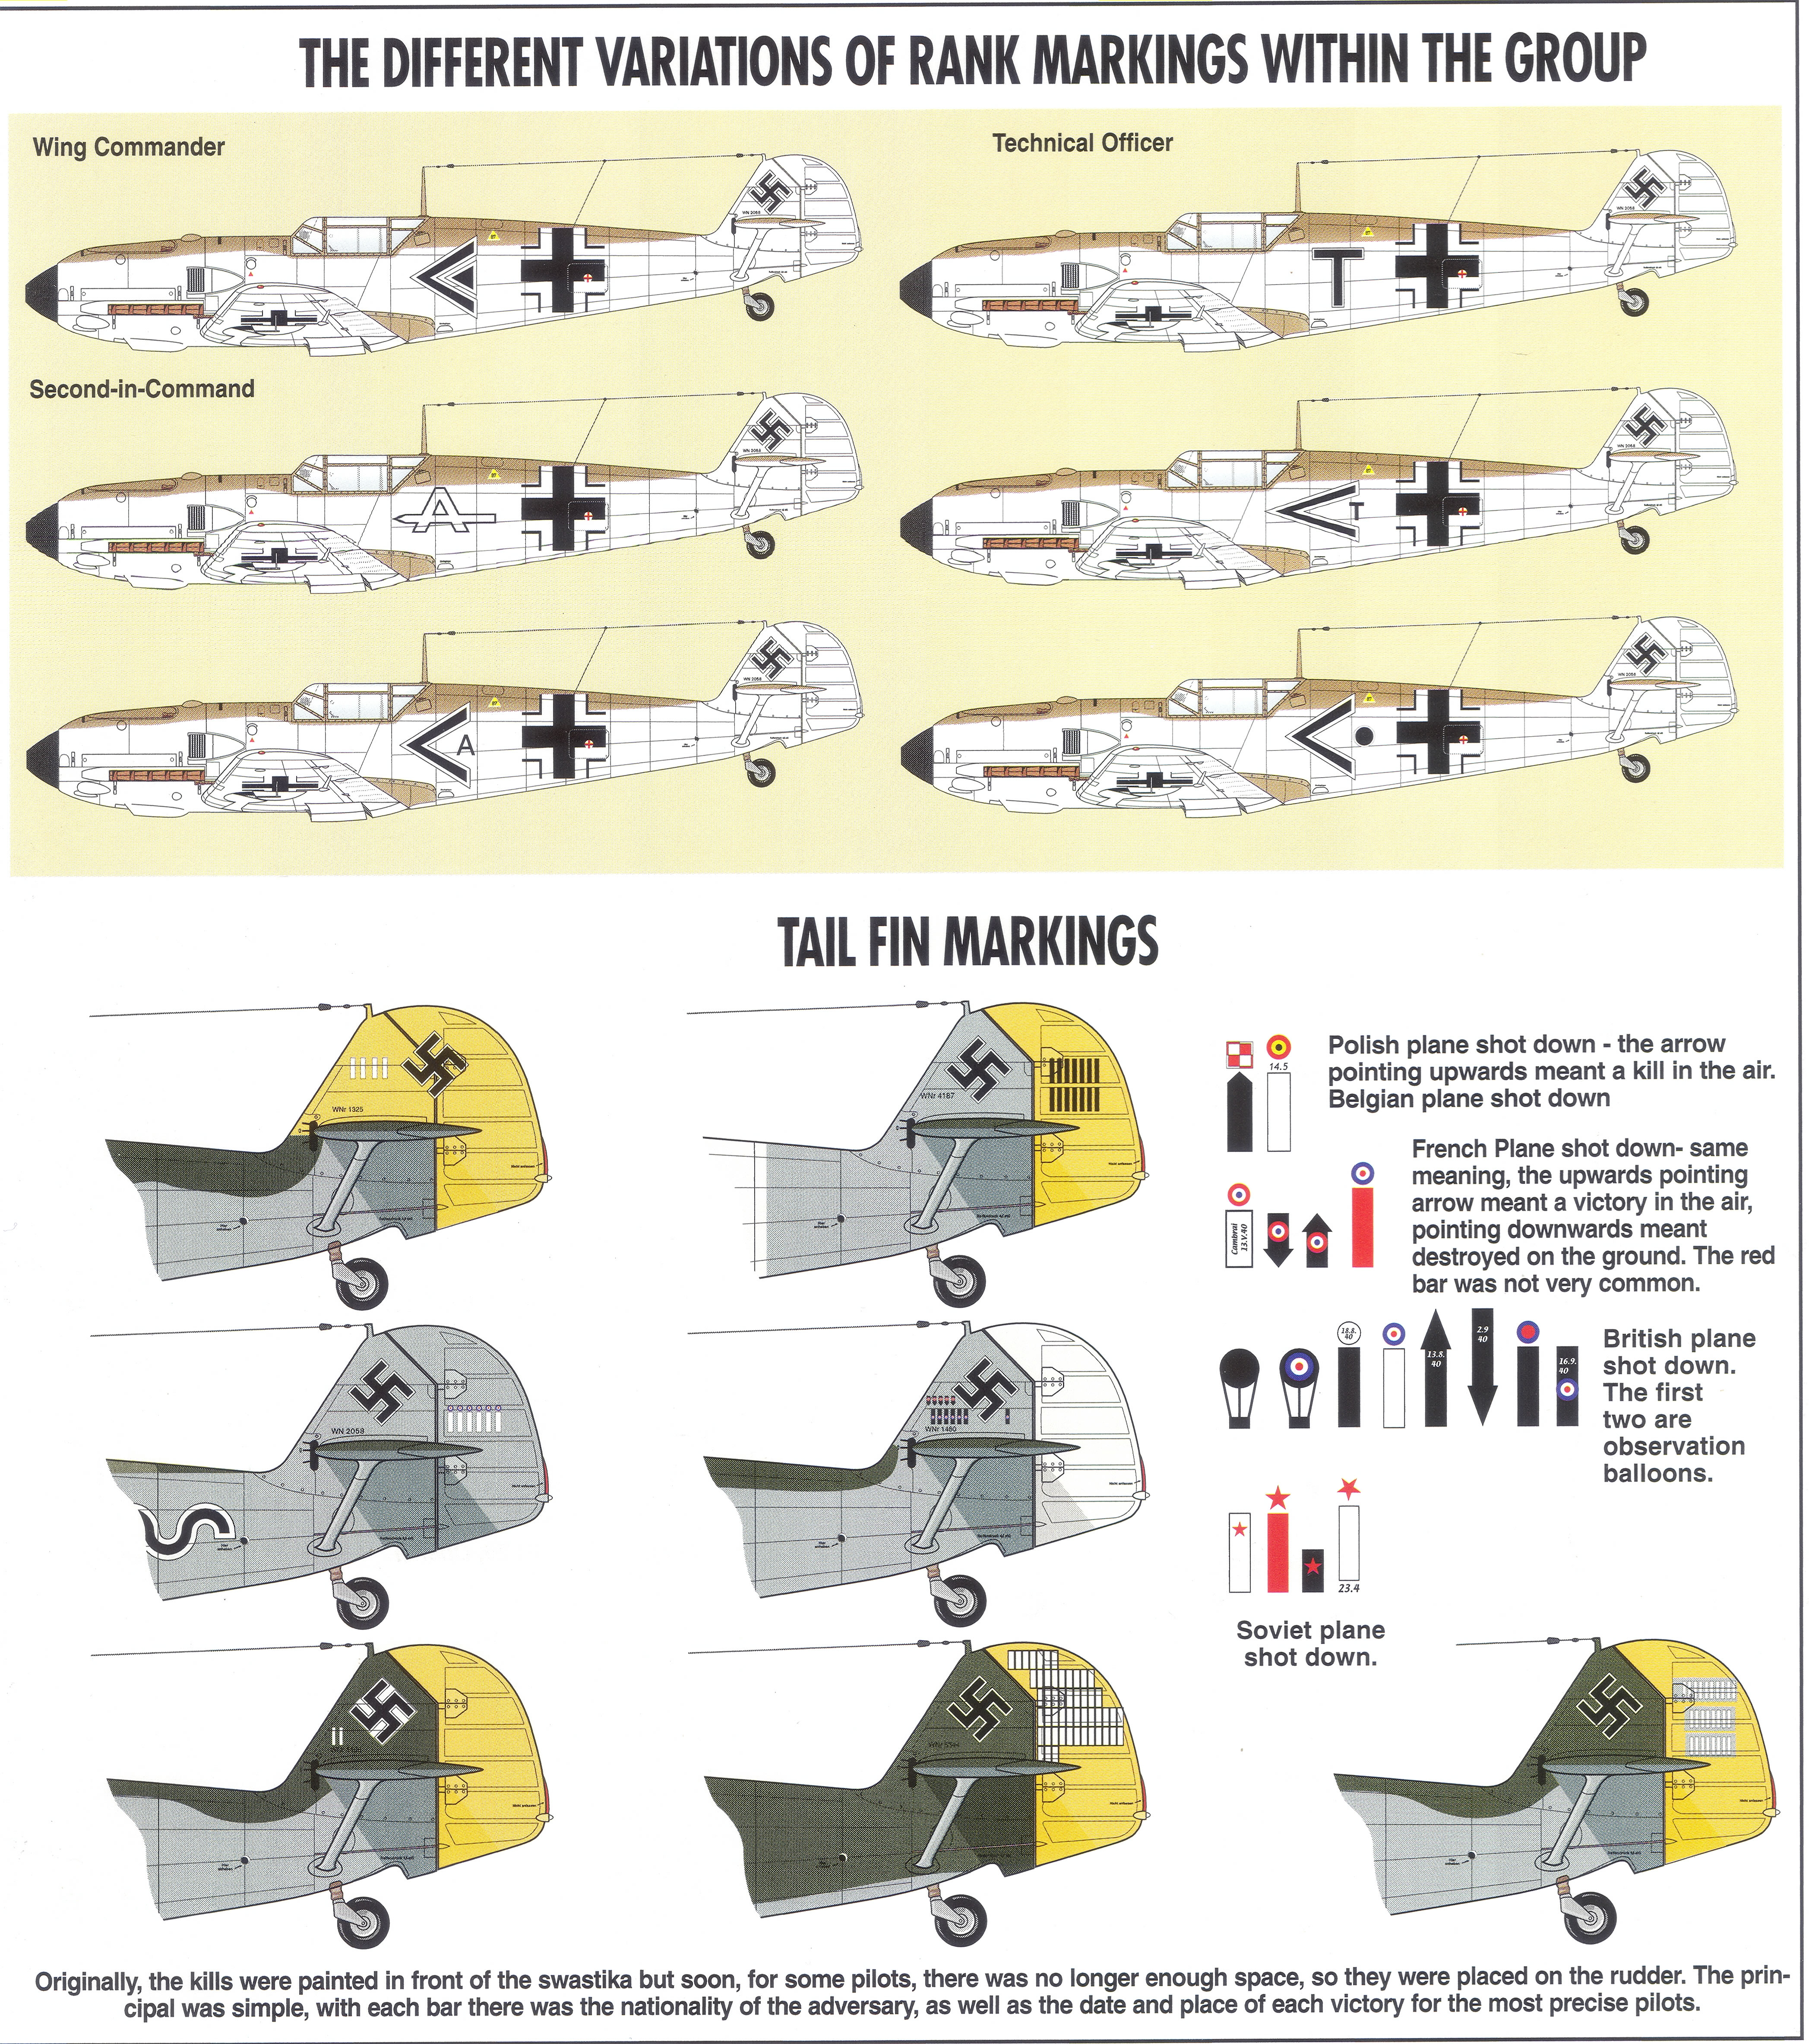 German rank insignia on airplanes for staff officers ask the art variations of rank marking profiles buycottarizona